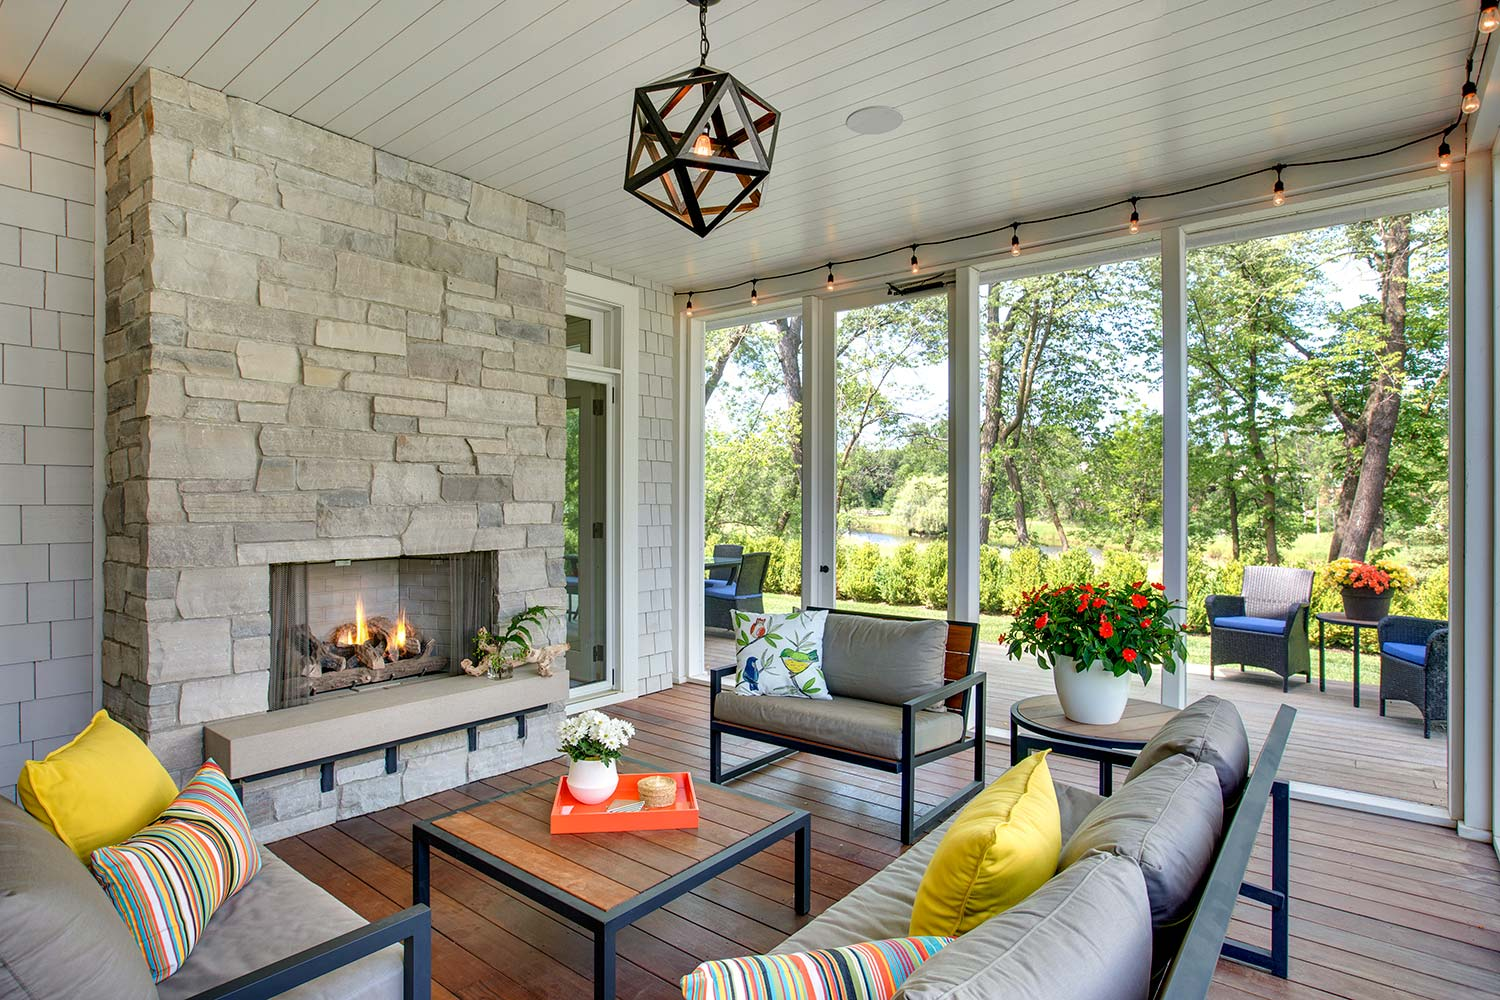 sp13 Great ideas for screened porches that can inspire you